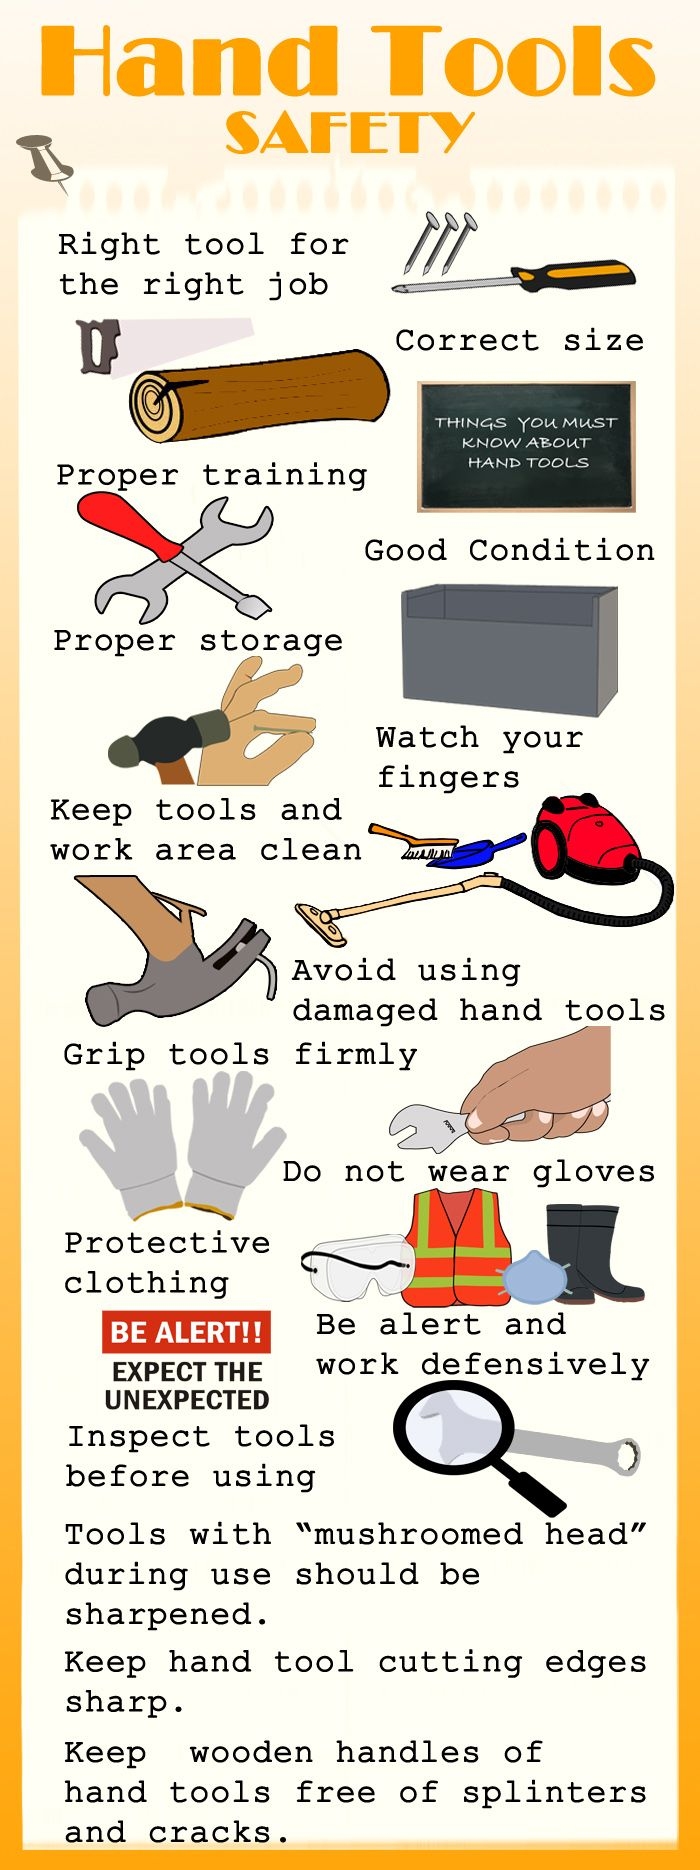 Hand tools can cause injuries because of the wrong and damaged tools.